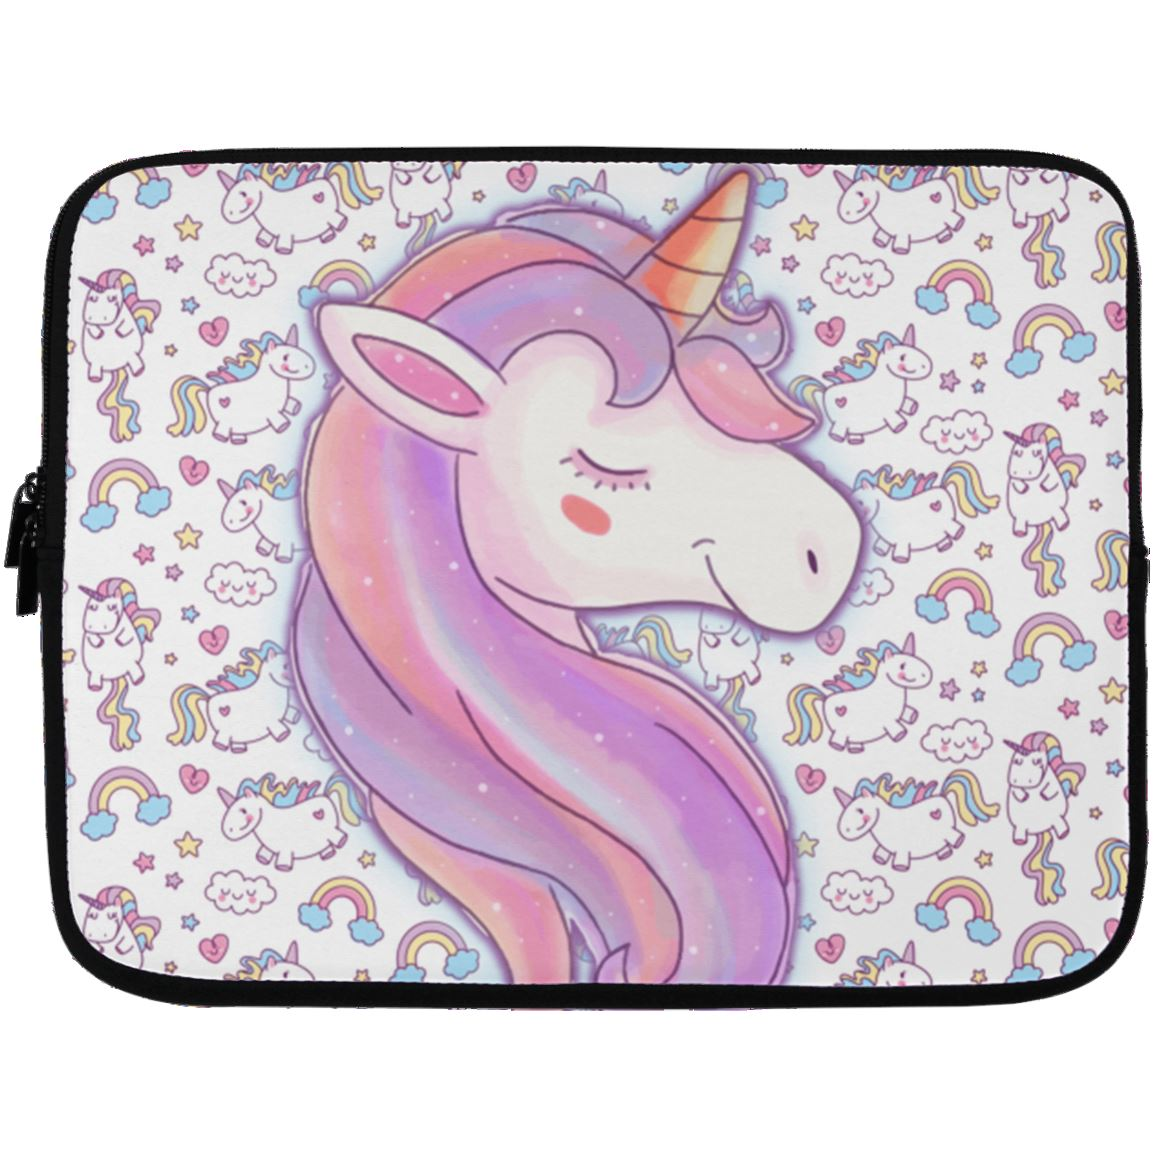 Unicorn Love Laptop Sleeve Apparel Laptop Sleeve - 13 inch White One Size